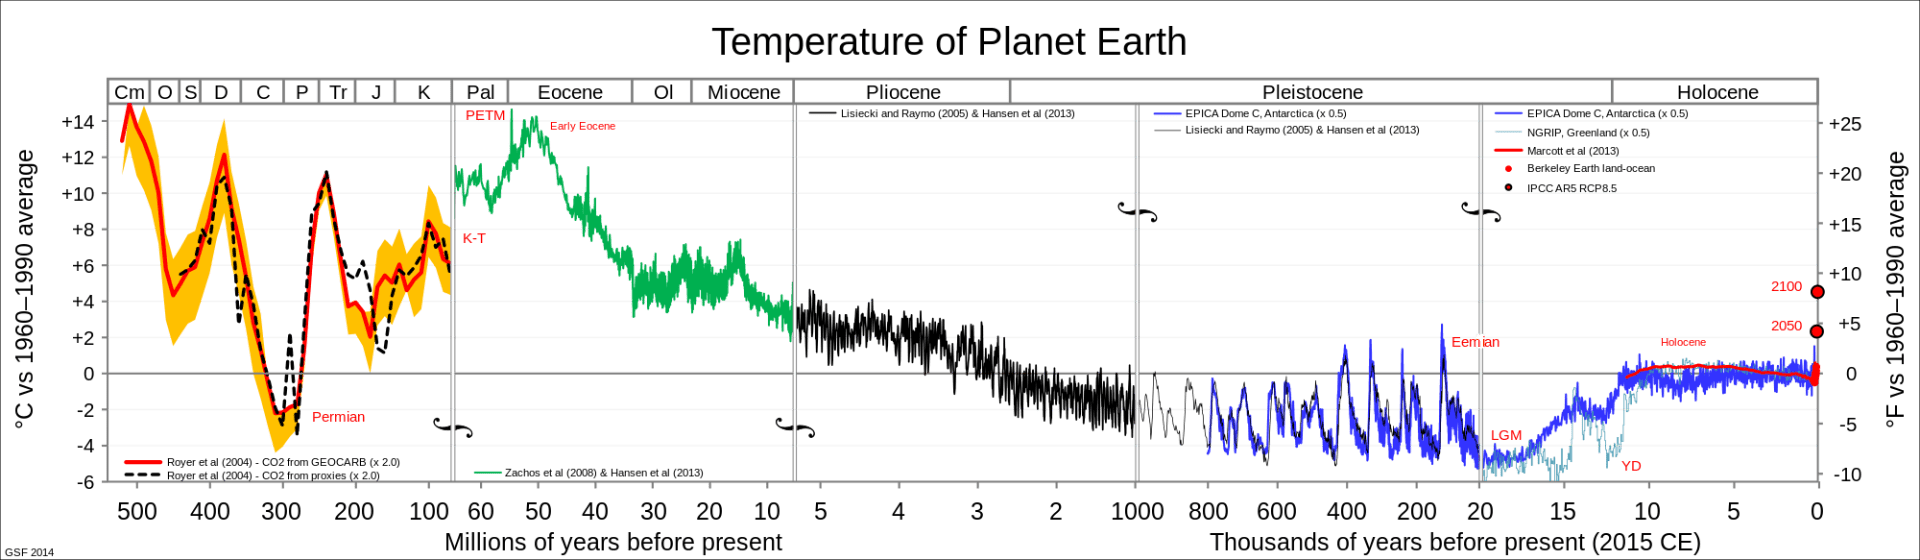 Reconstruction of global temperature in the Phanerozoic.